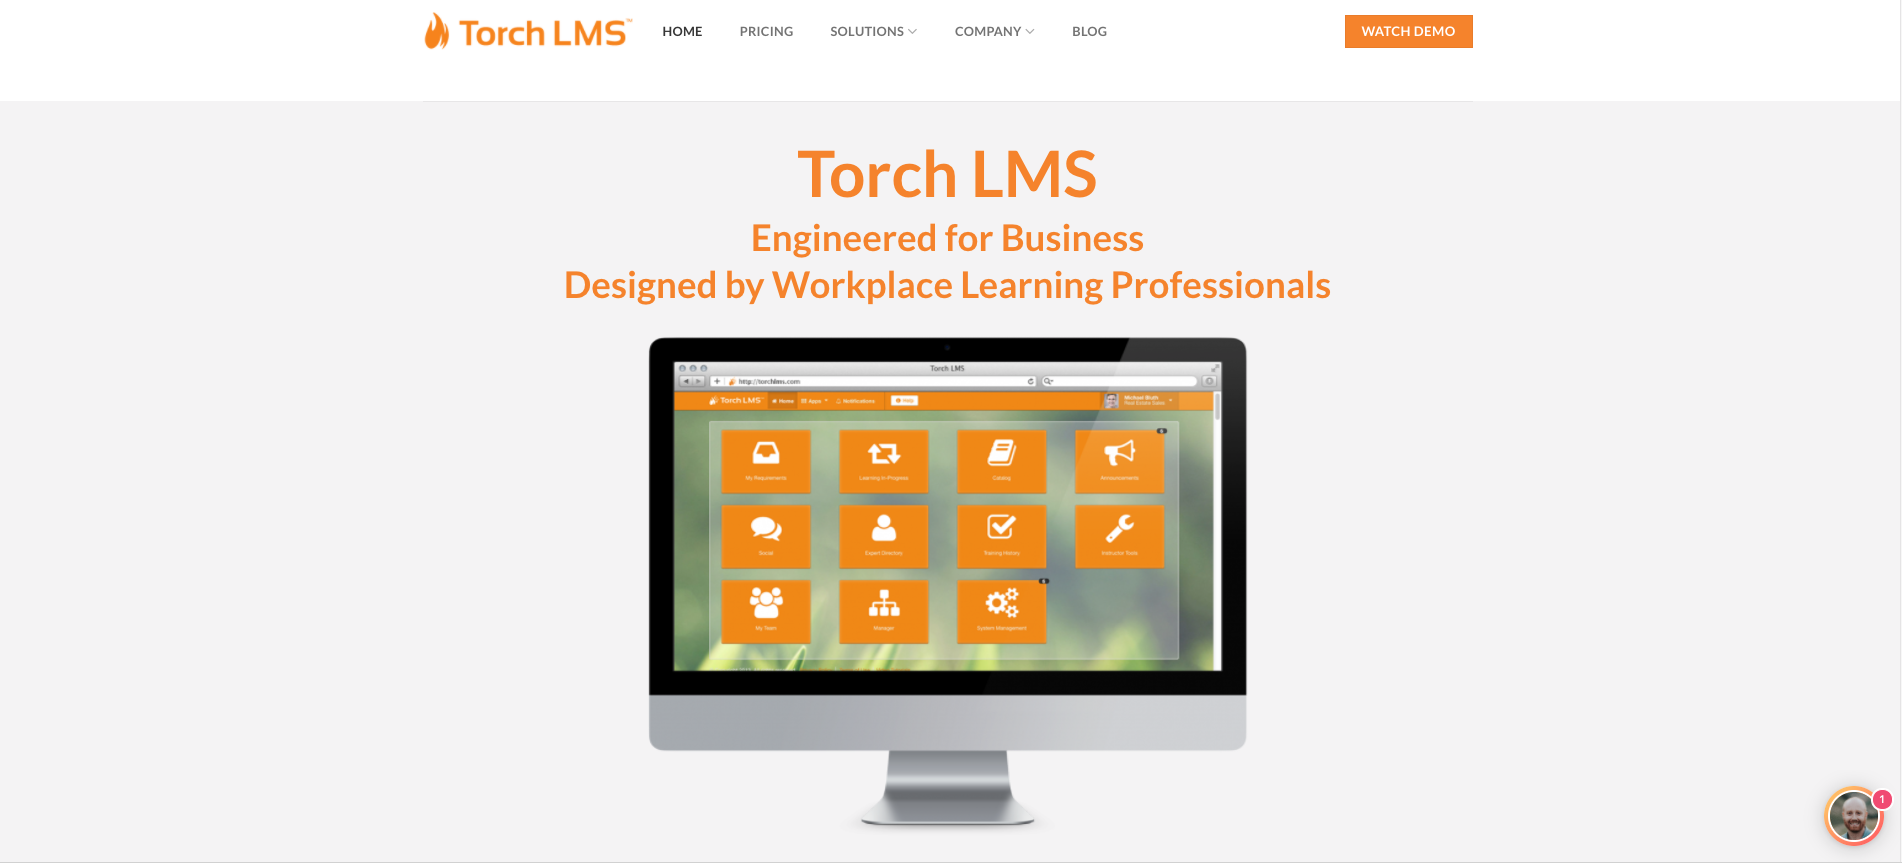 Torch LMS Demo - Homepage